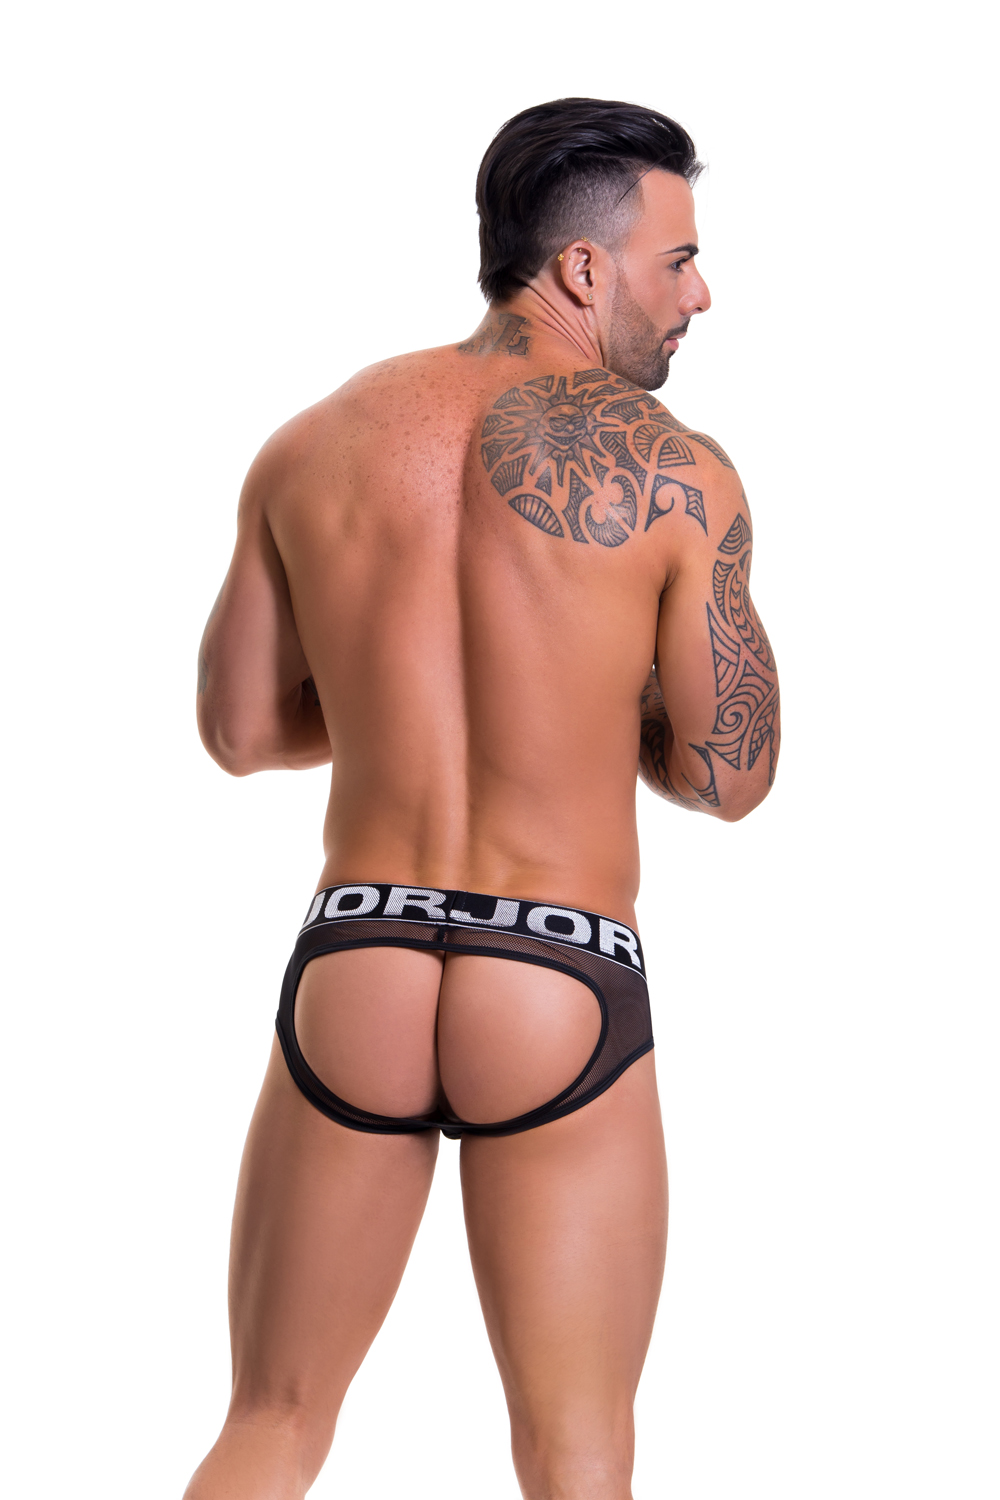 JOR Mercury Jock-Brief